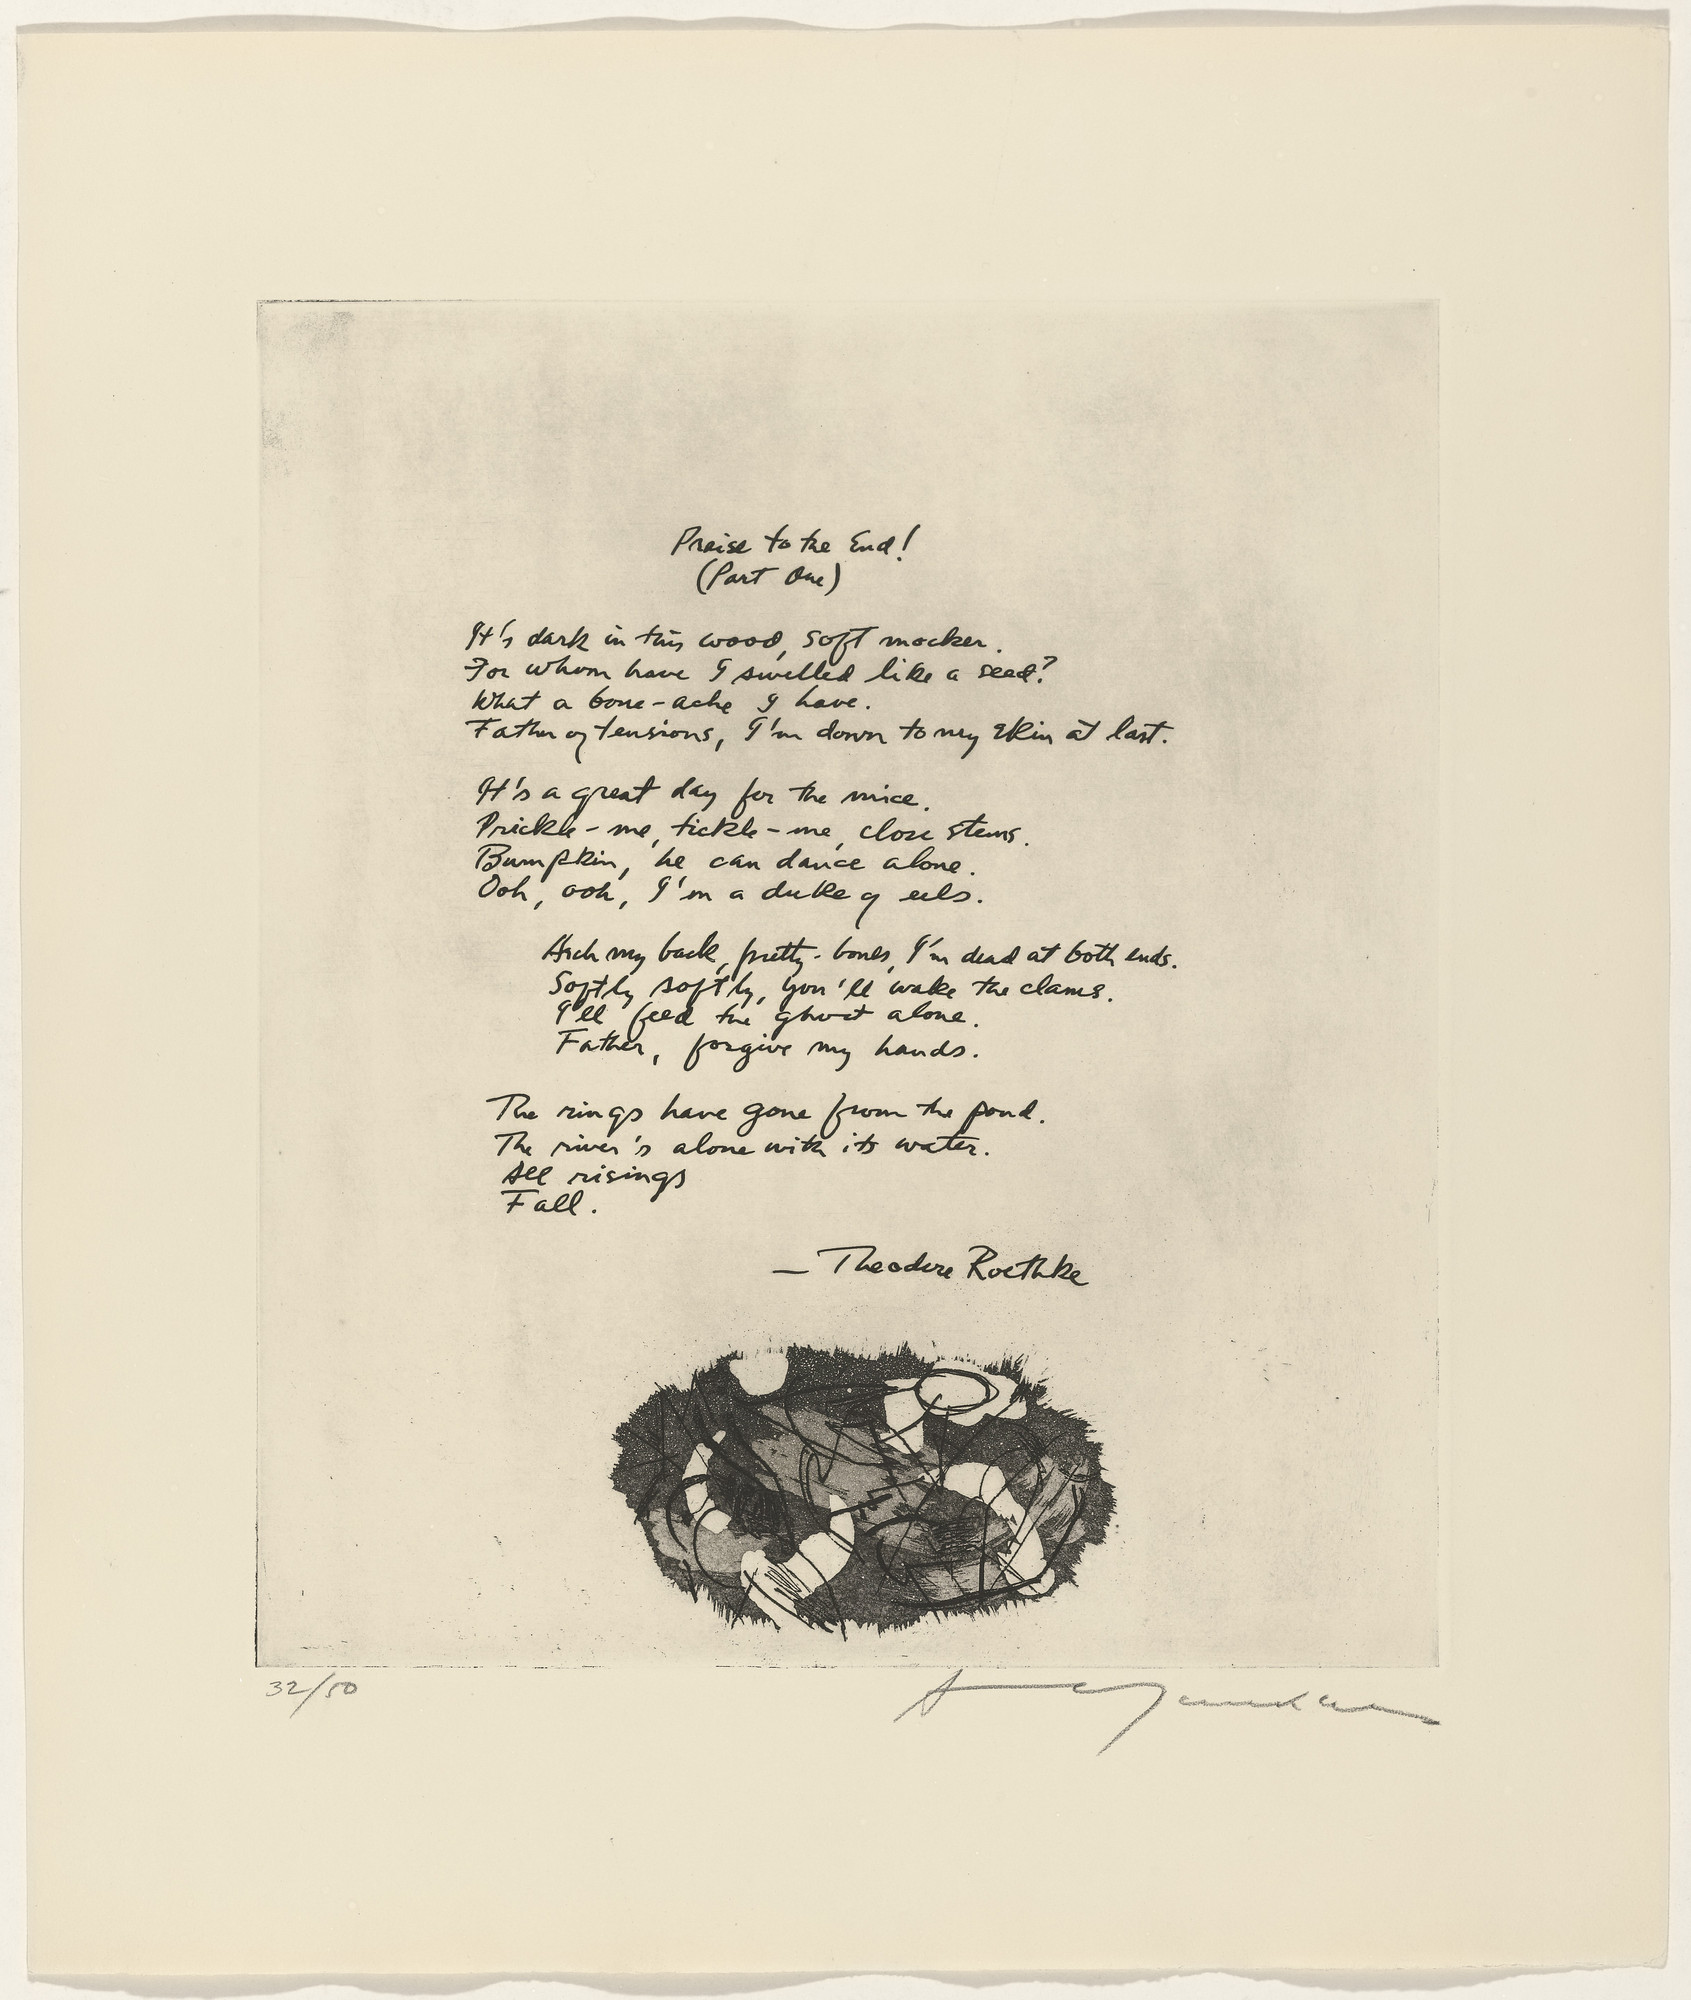 Adja Yunkers, Theodore Roethke. In-text plate (folio 24) from 21 Etchings and Poems. 1960